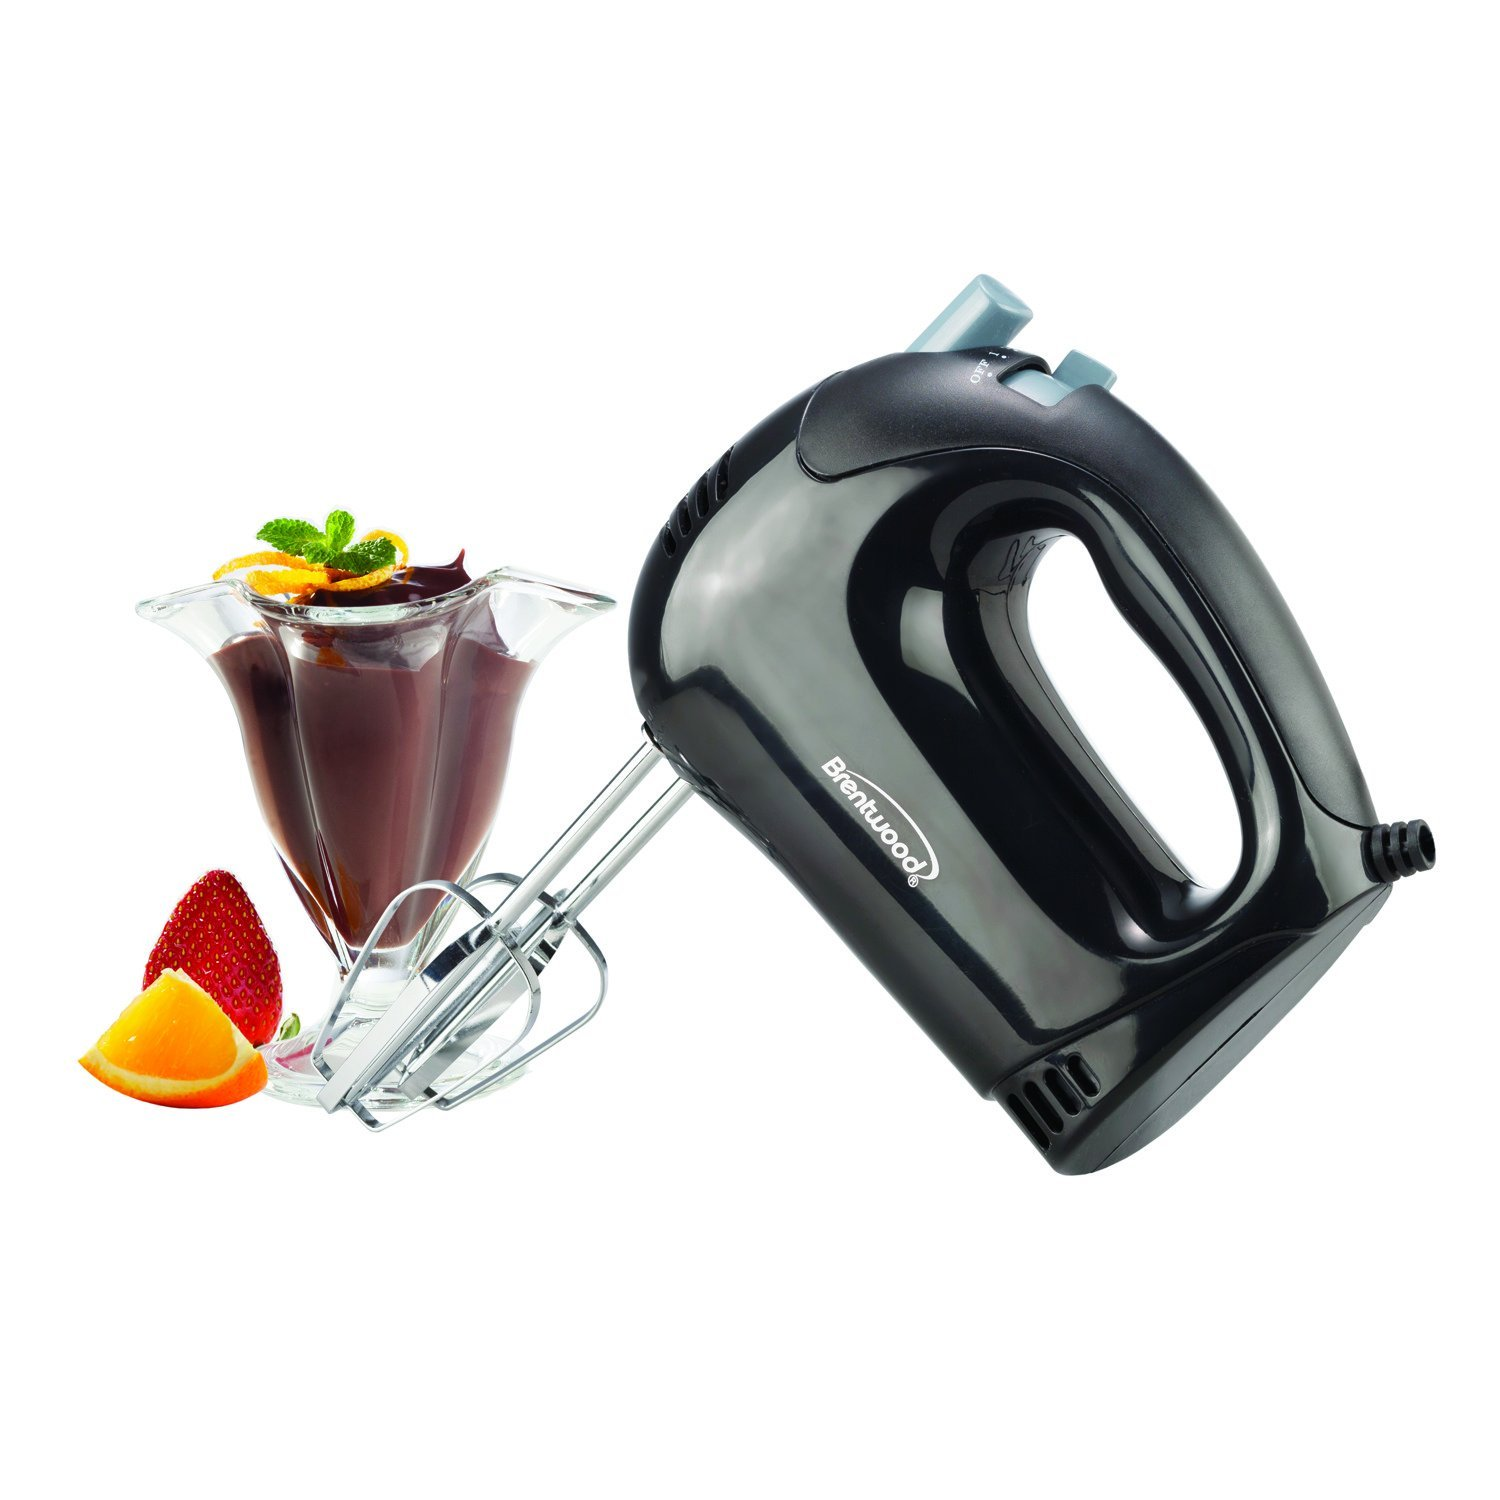 5-Speed Electric Hand Mixer black